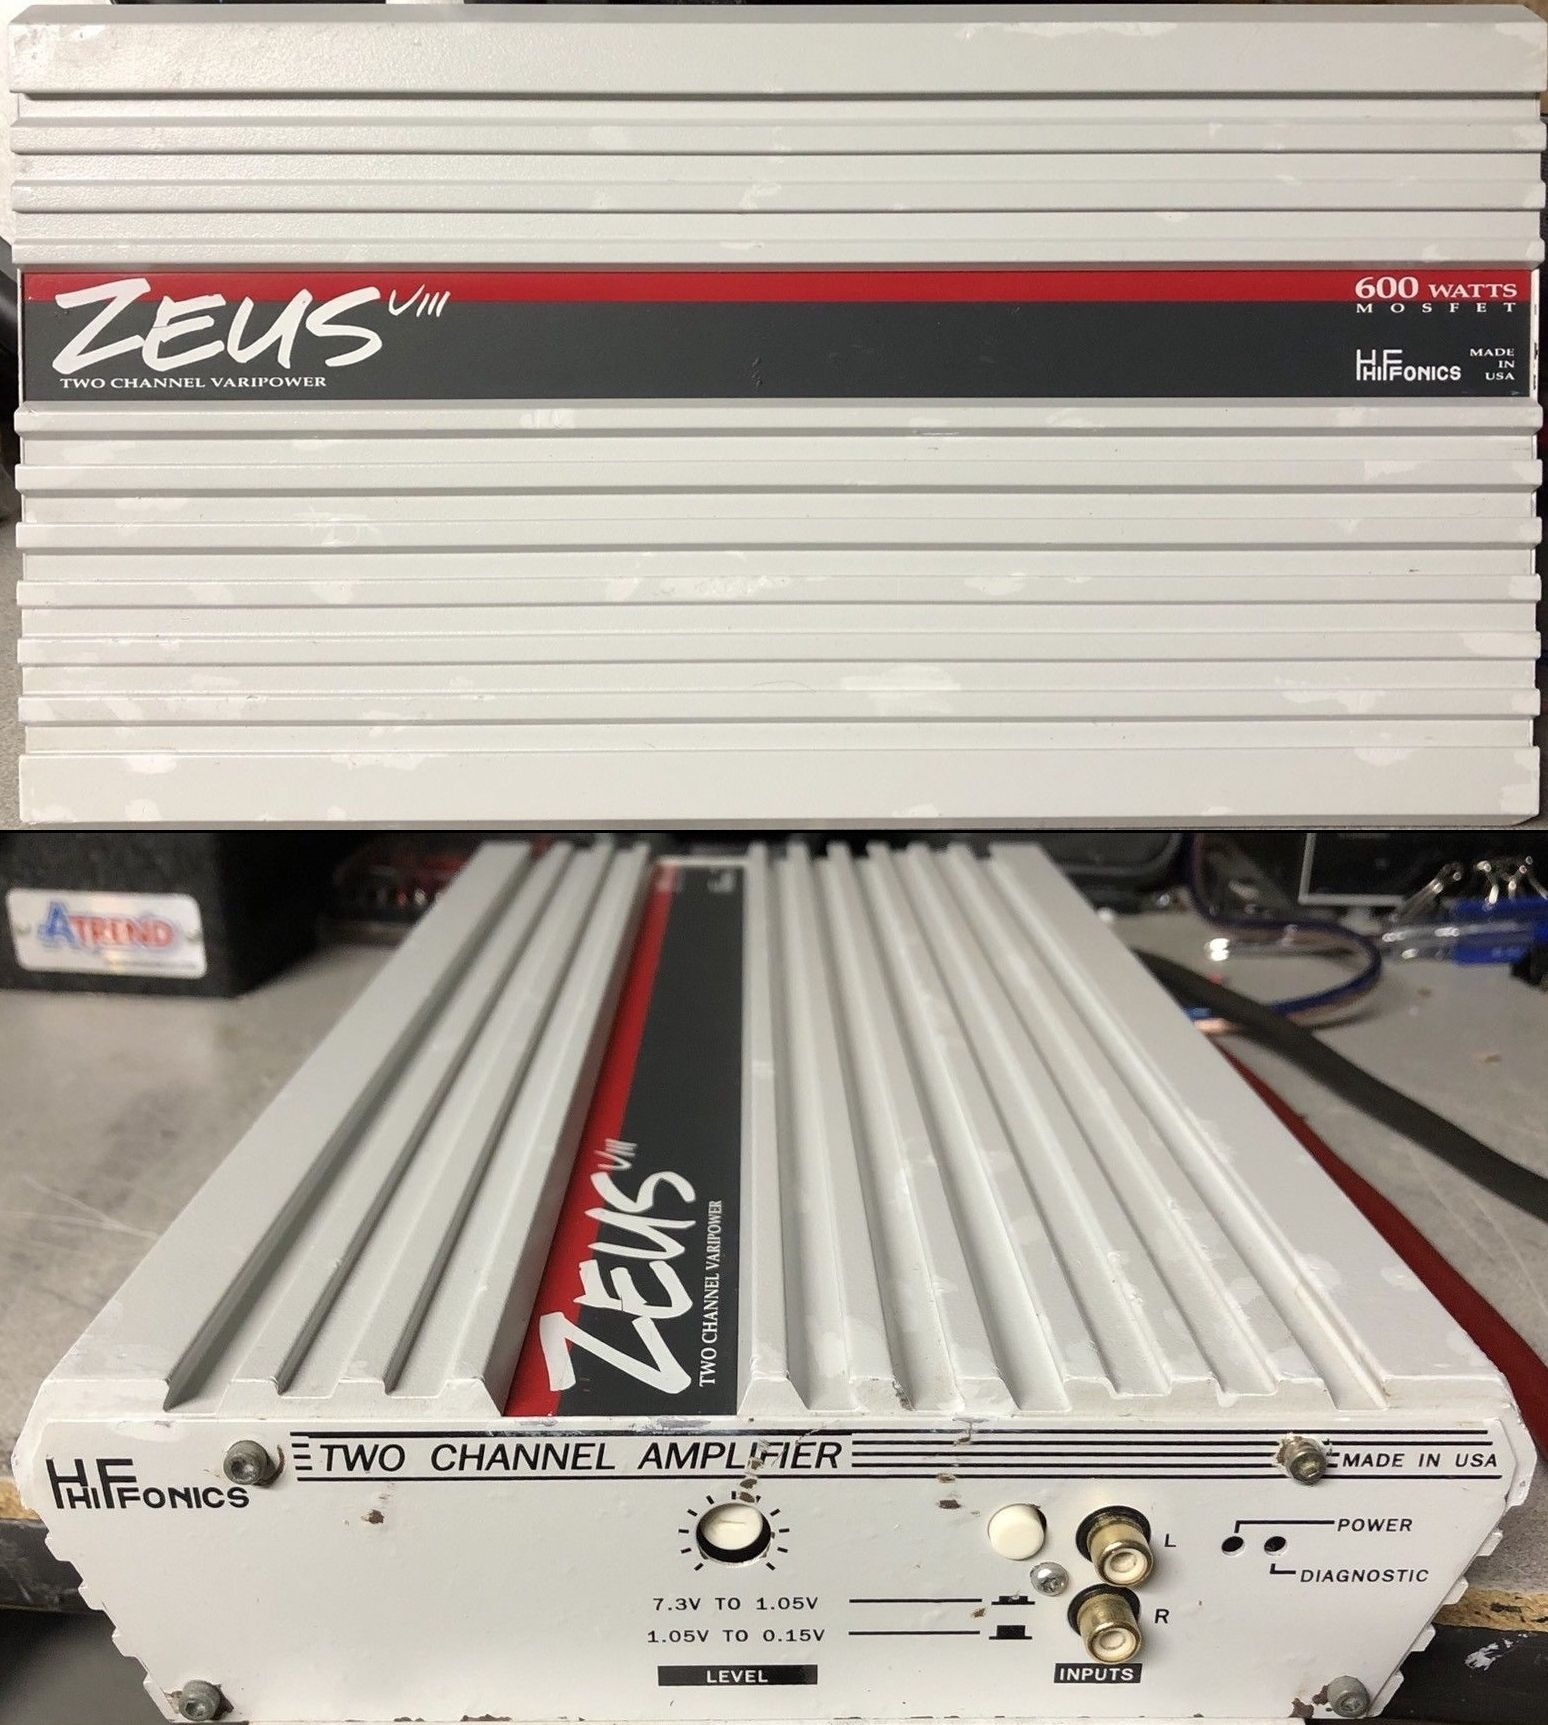 Hifonics Zeus VIII, 2 Channel 600 watt Amplifier. Made in ... on